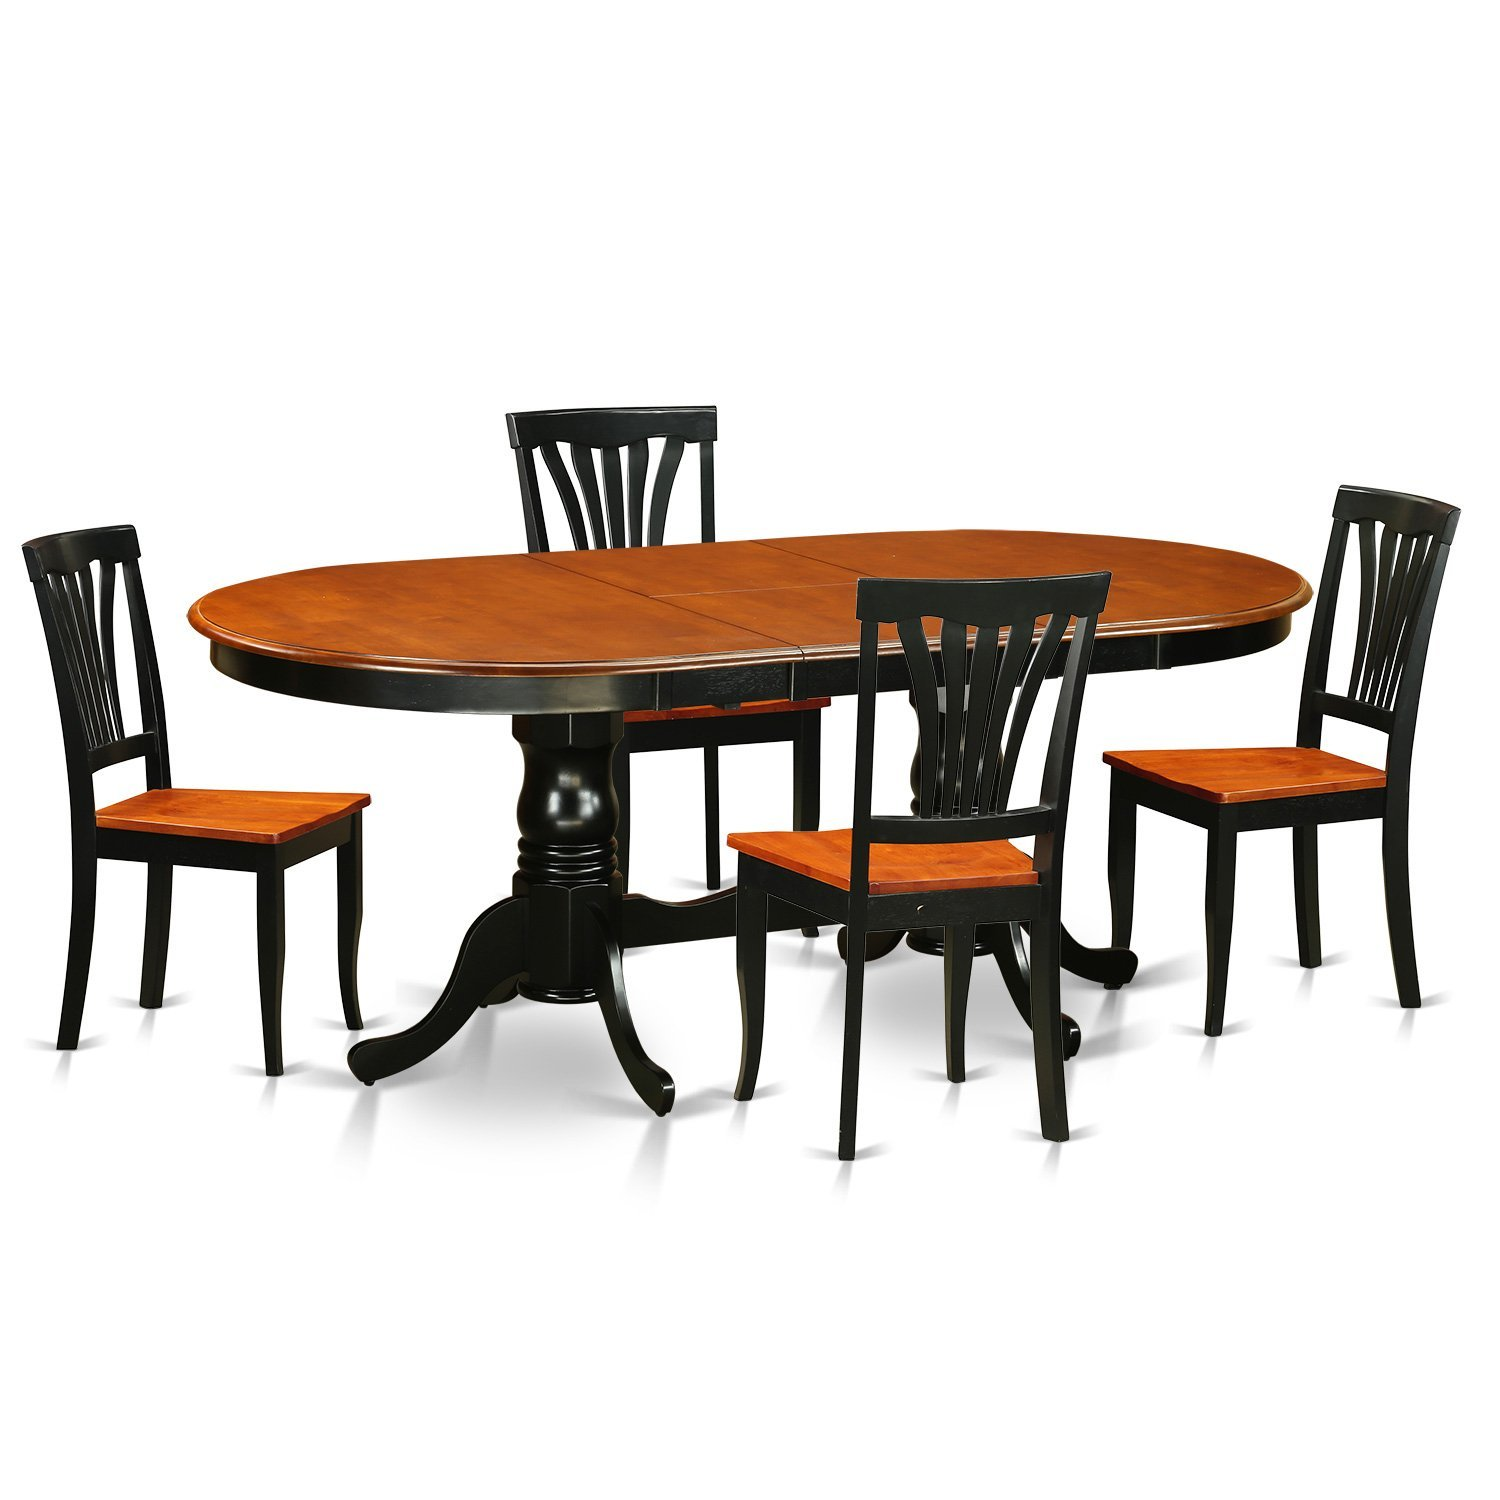 East West Furniture PLAV5-BCH-W 5 Piece Dining Table with 4 Solid Chairs Set